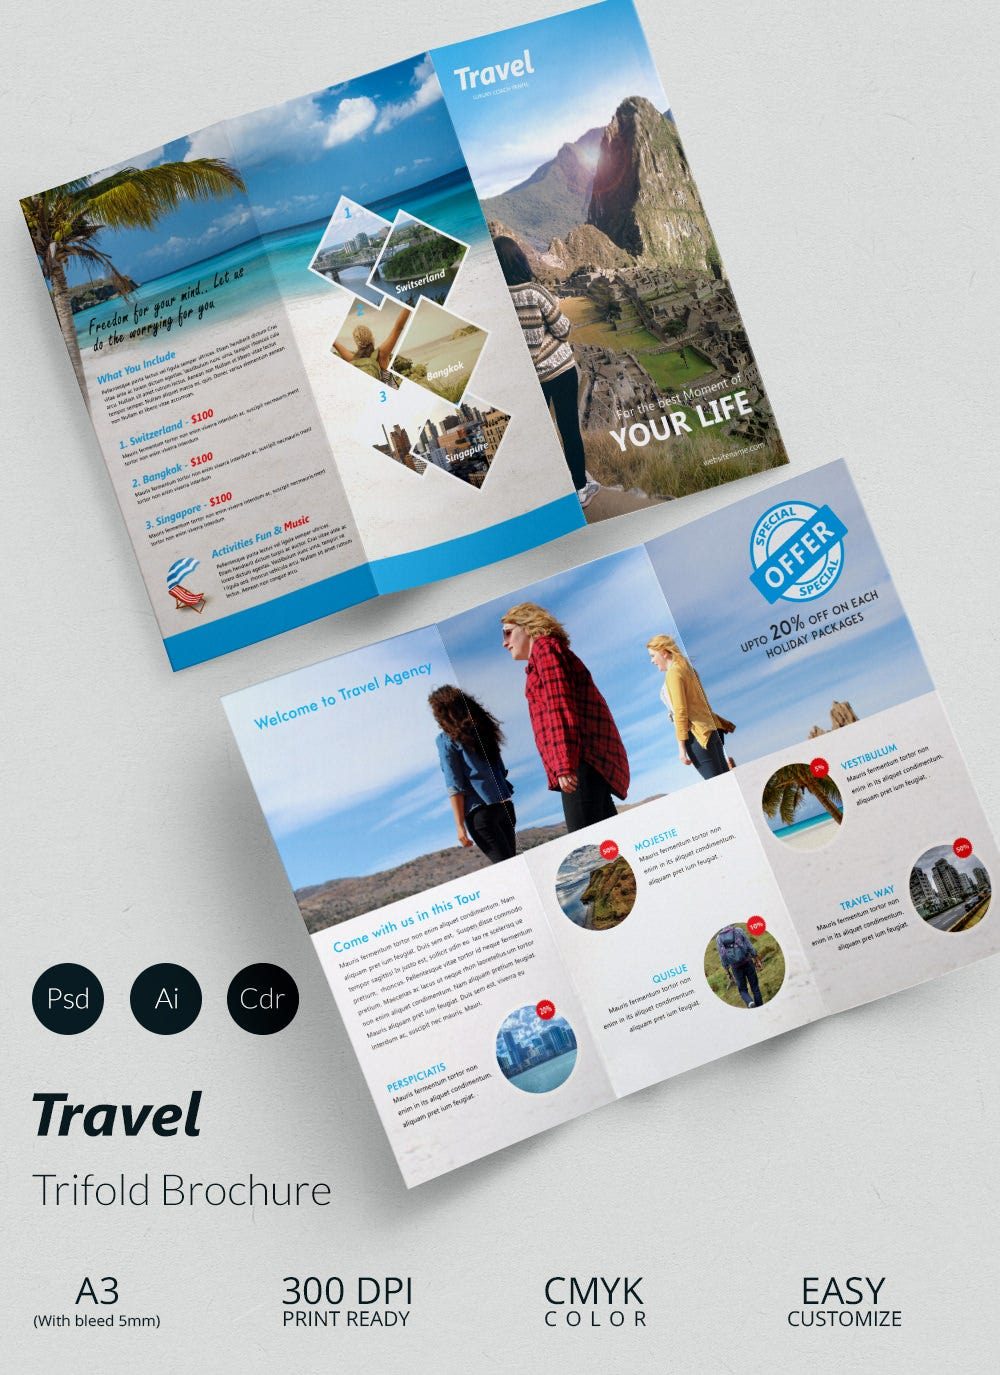 Travel A3 Trifold Brochure Template